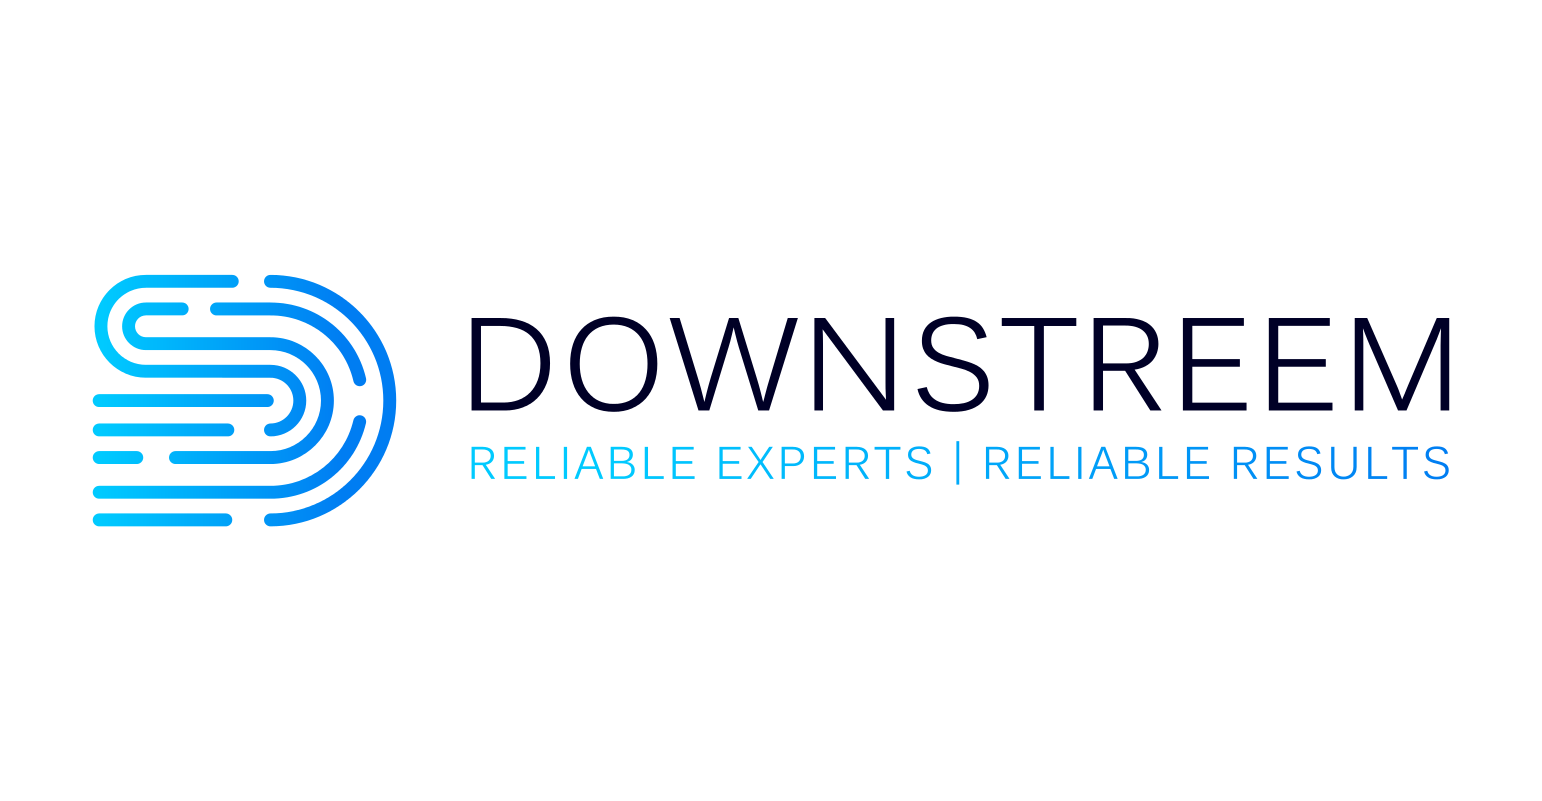 Digital Forensics Company Downstreem Launches Mobile Data Collection Device RemoteStreem